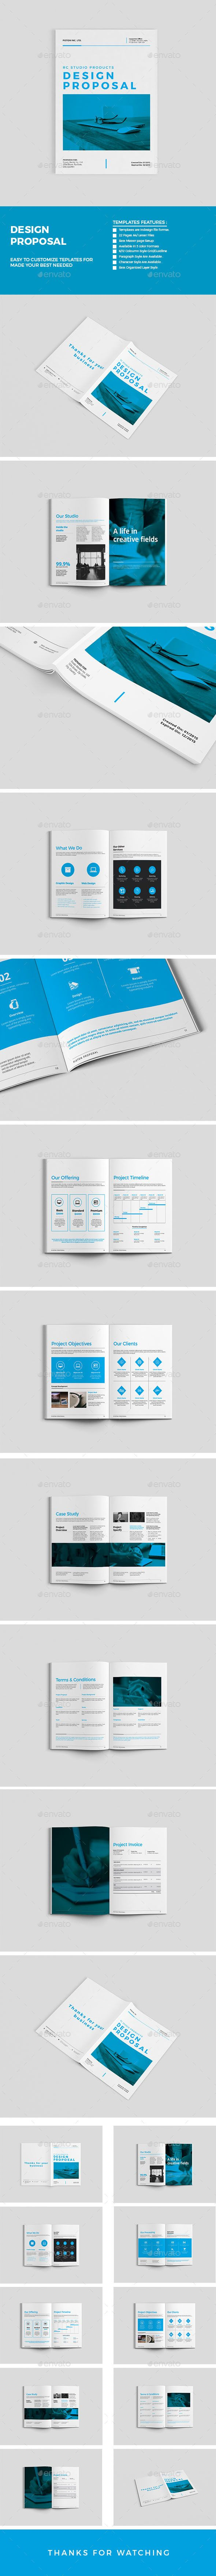 22 pages Clean Business Proposal Template #design Download: http://graphicriver.net/item/proposal/13204443?ref=ksioks